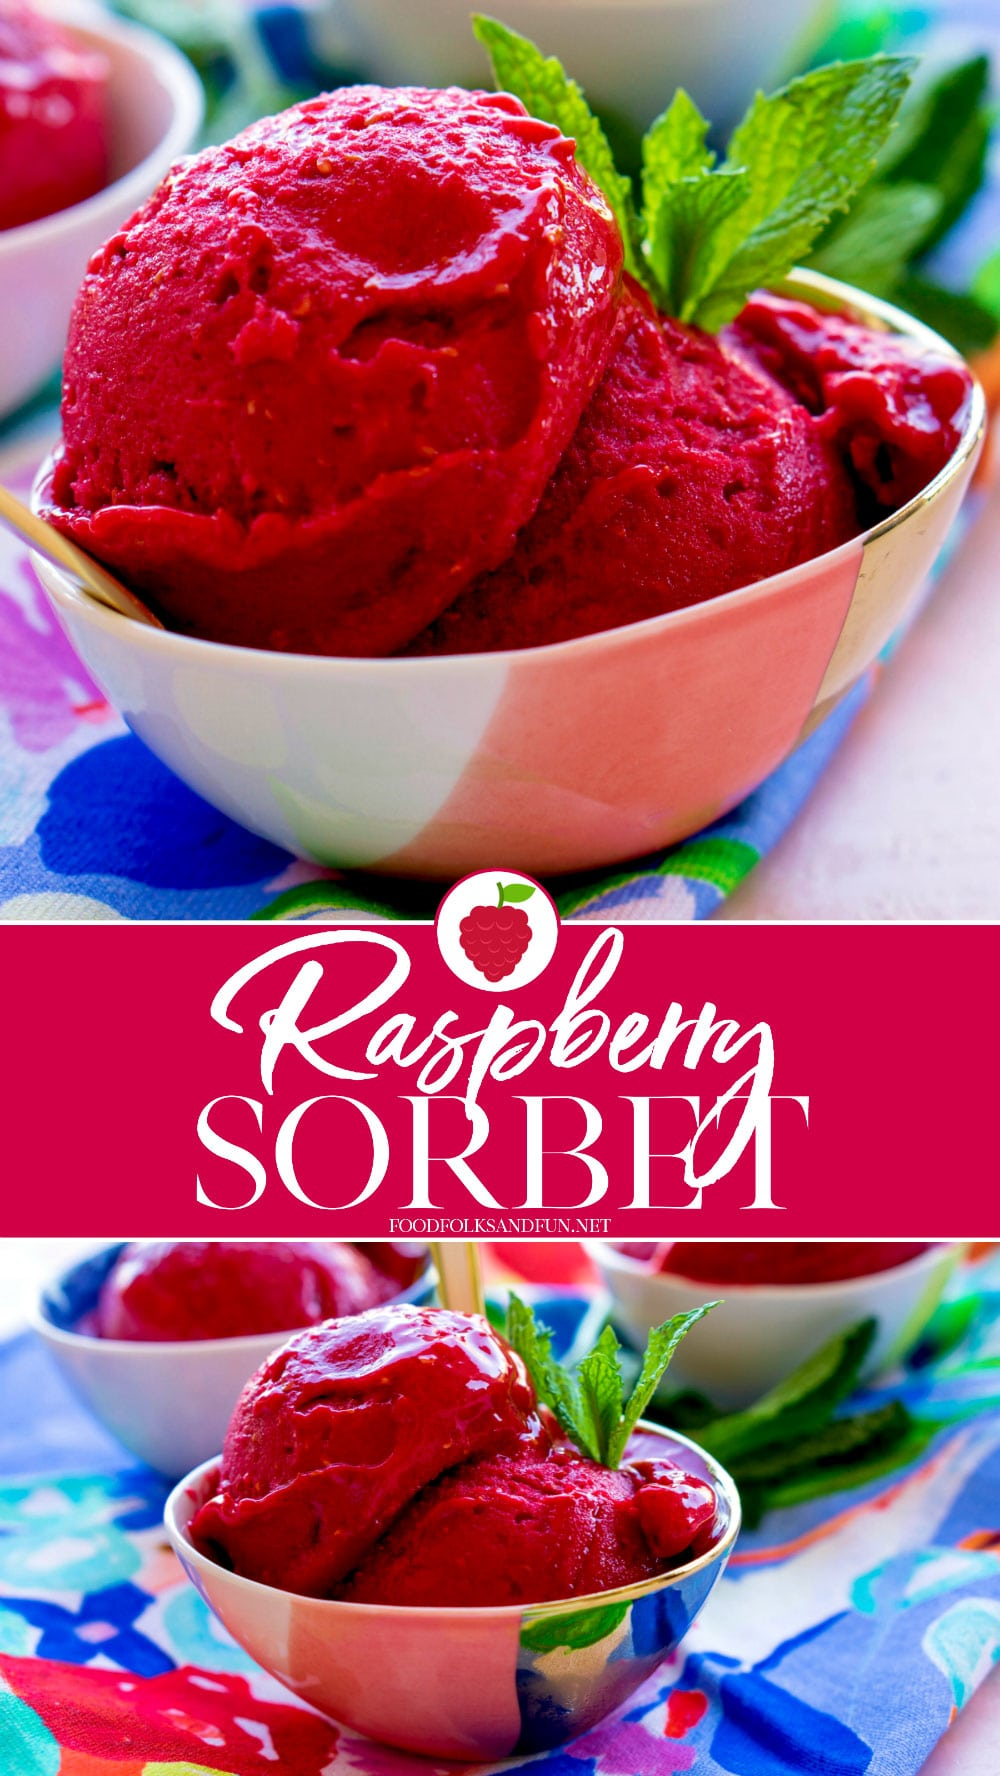 Homemade Raspberry Sorbet is only minutes away! All you need are just 4 ingredients to make a perfect light summer treat! #fruit #fruitdessert #raspberry #raspberryrecipe #dessert #summer #summerdessert #foodfolksandfun via @foodfolksandfun